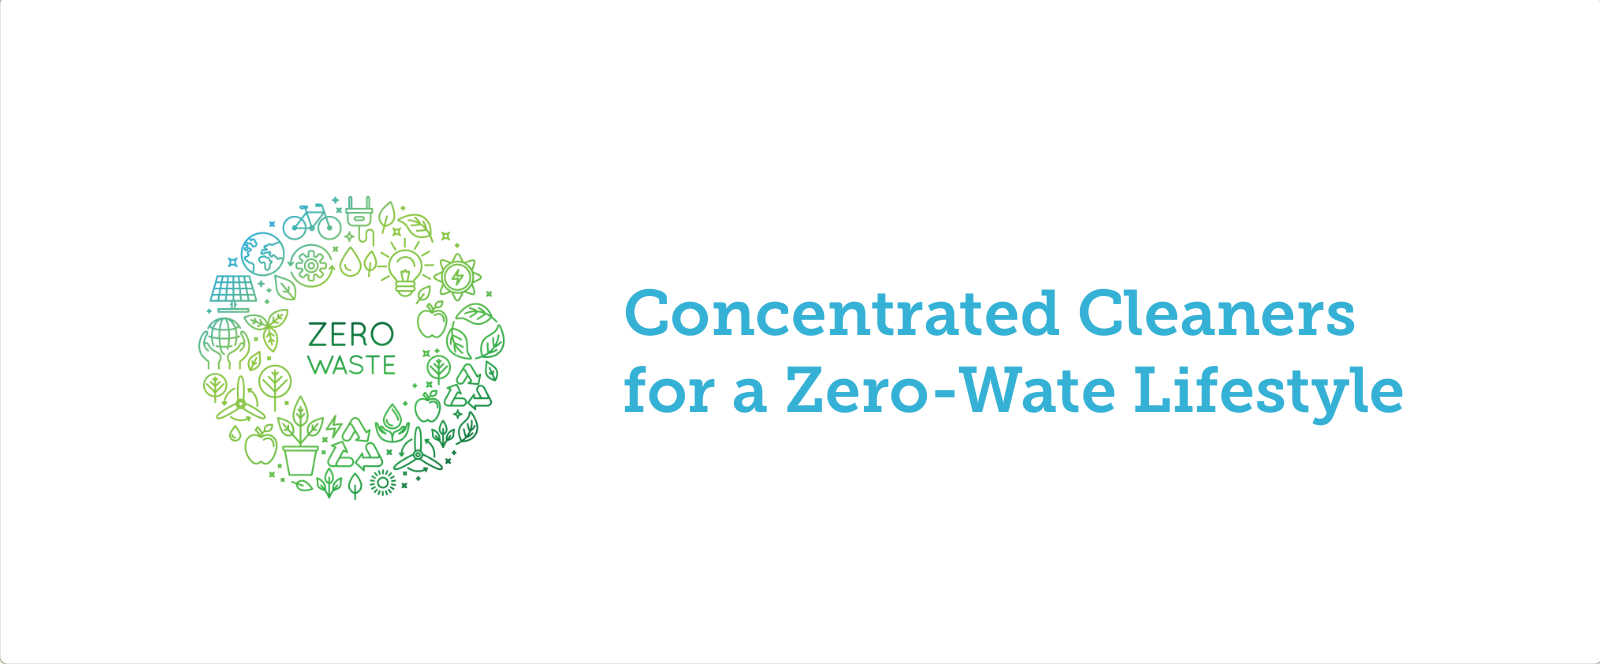 use concentrated cleaners for a zero waste lifestyle